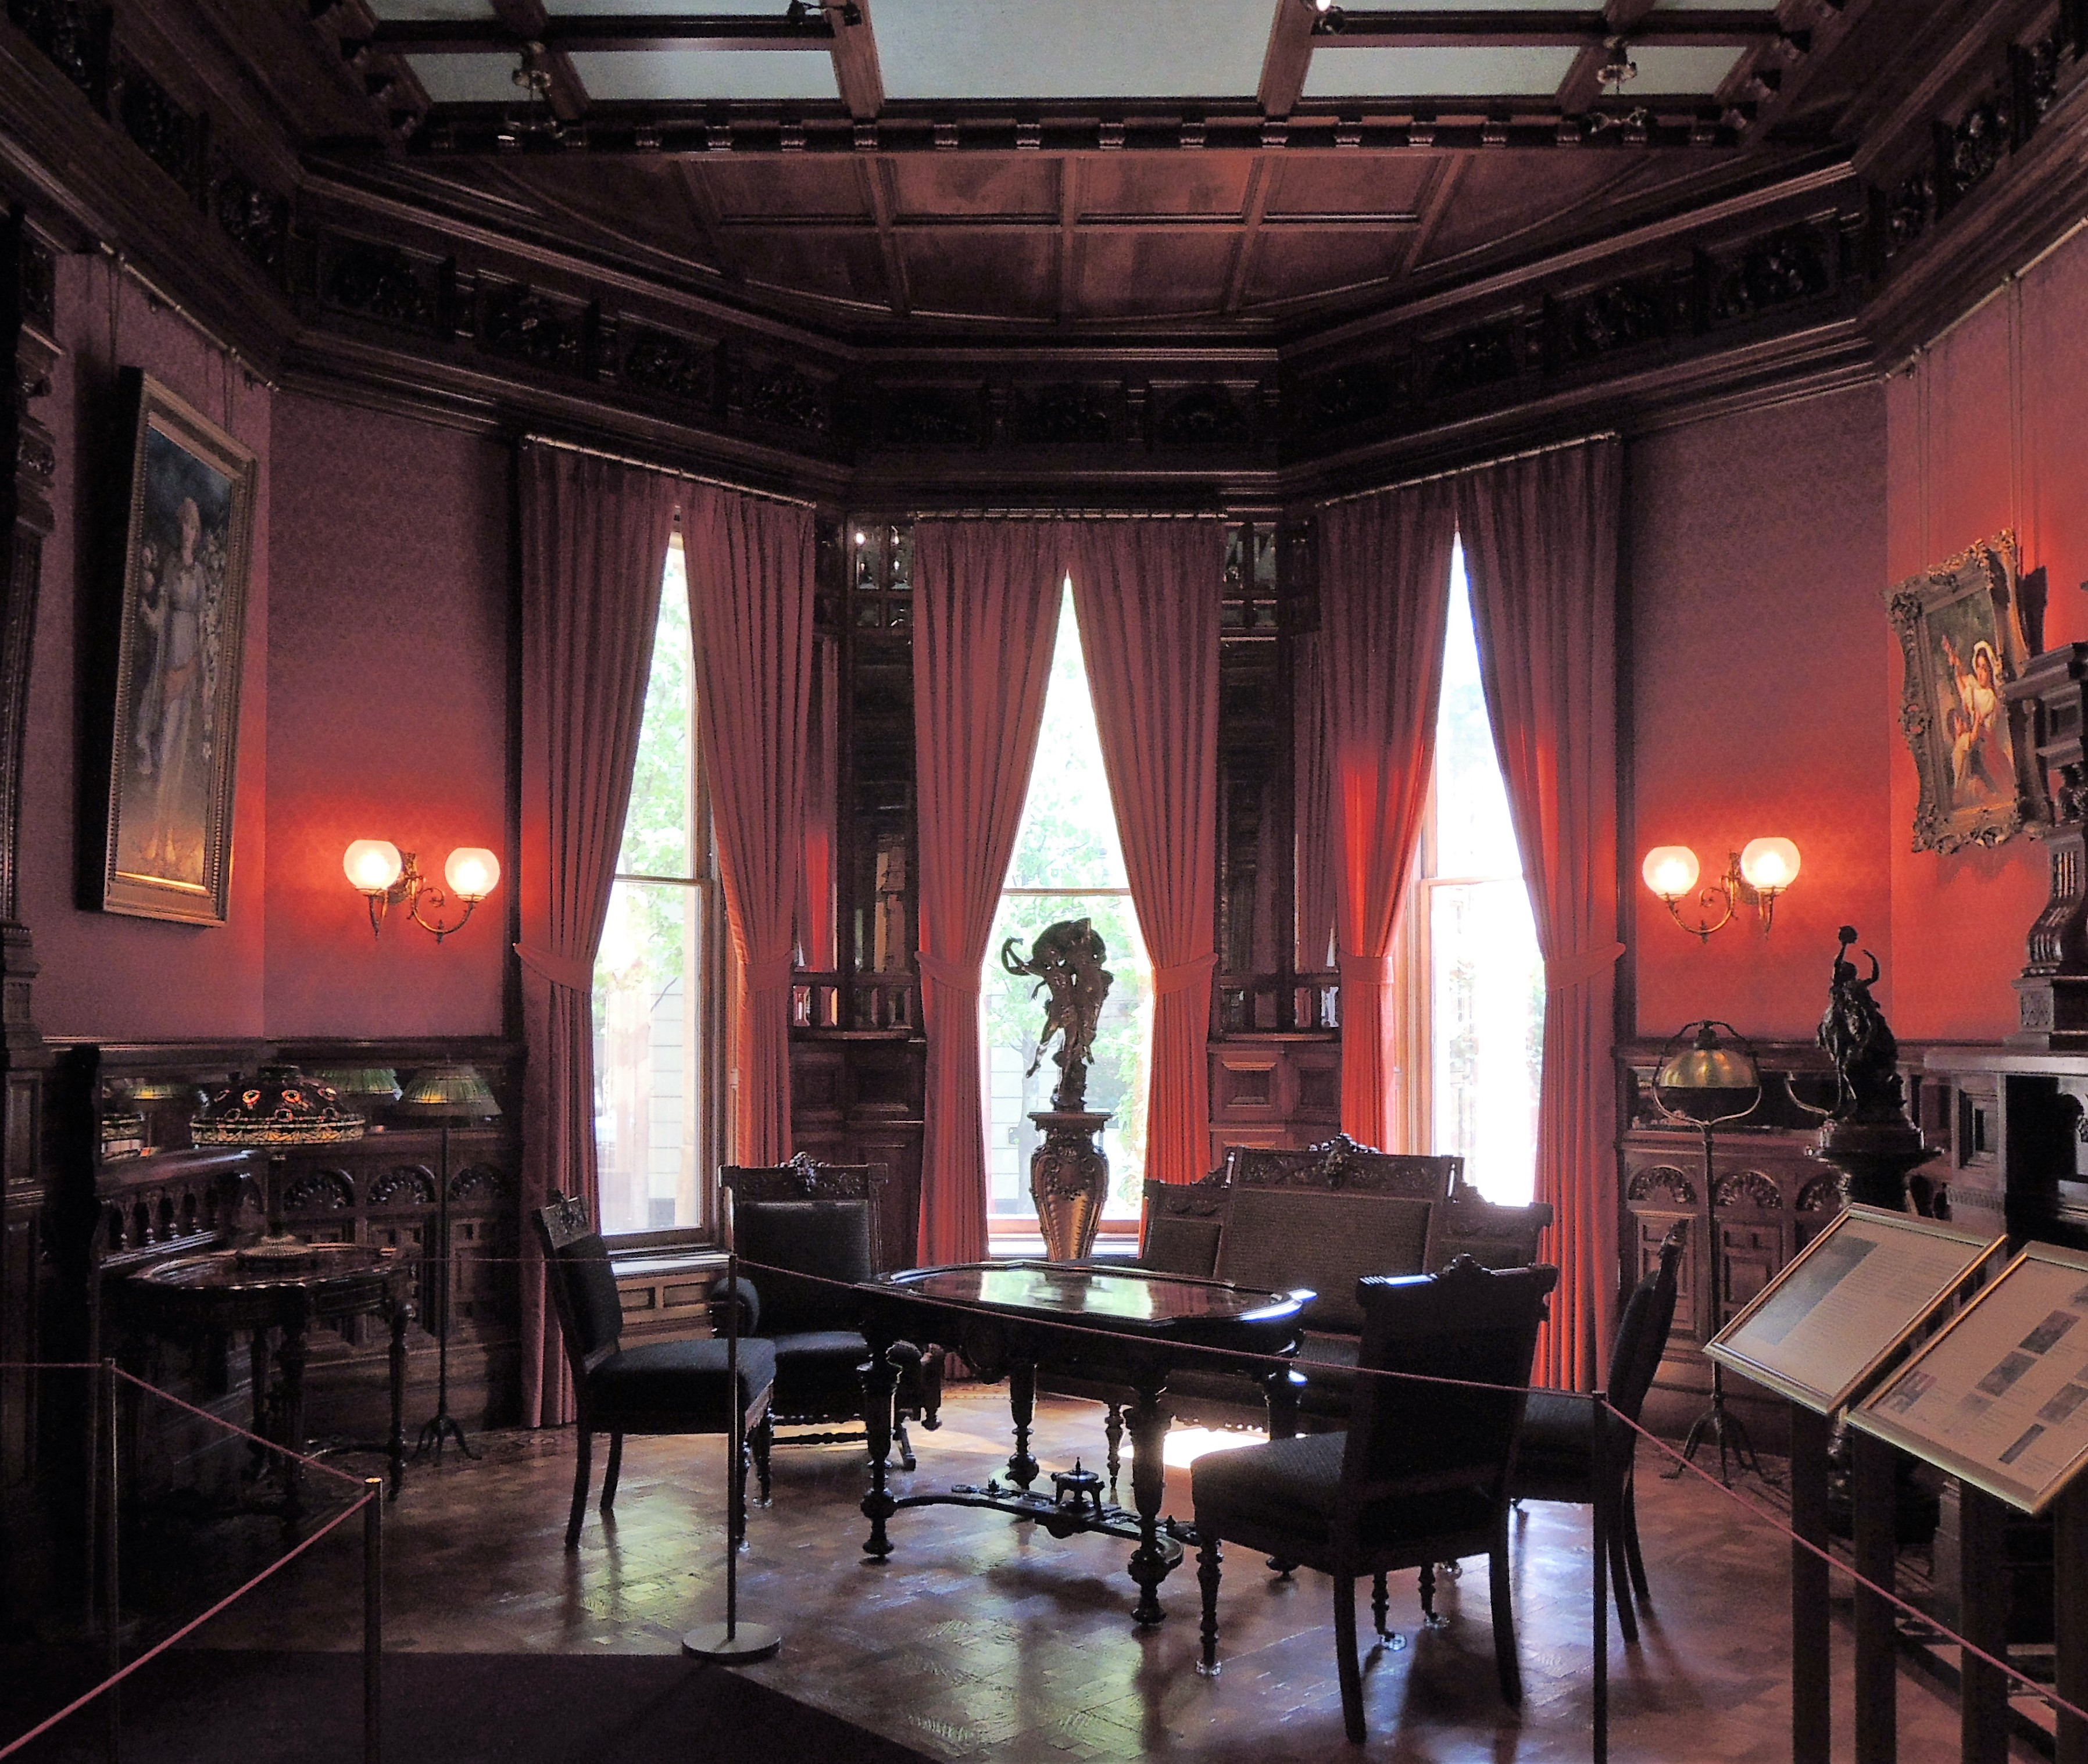 Visiting The Driehaus Museum In Chicago